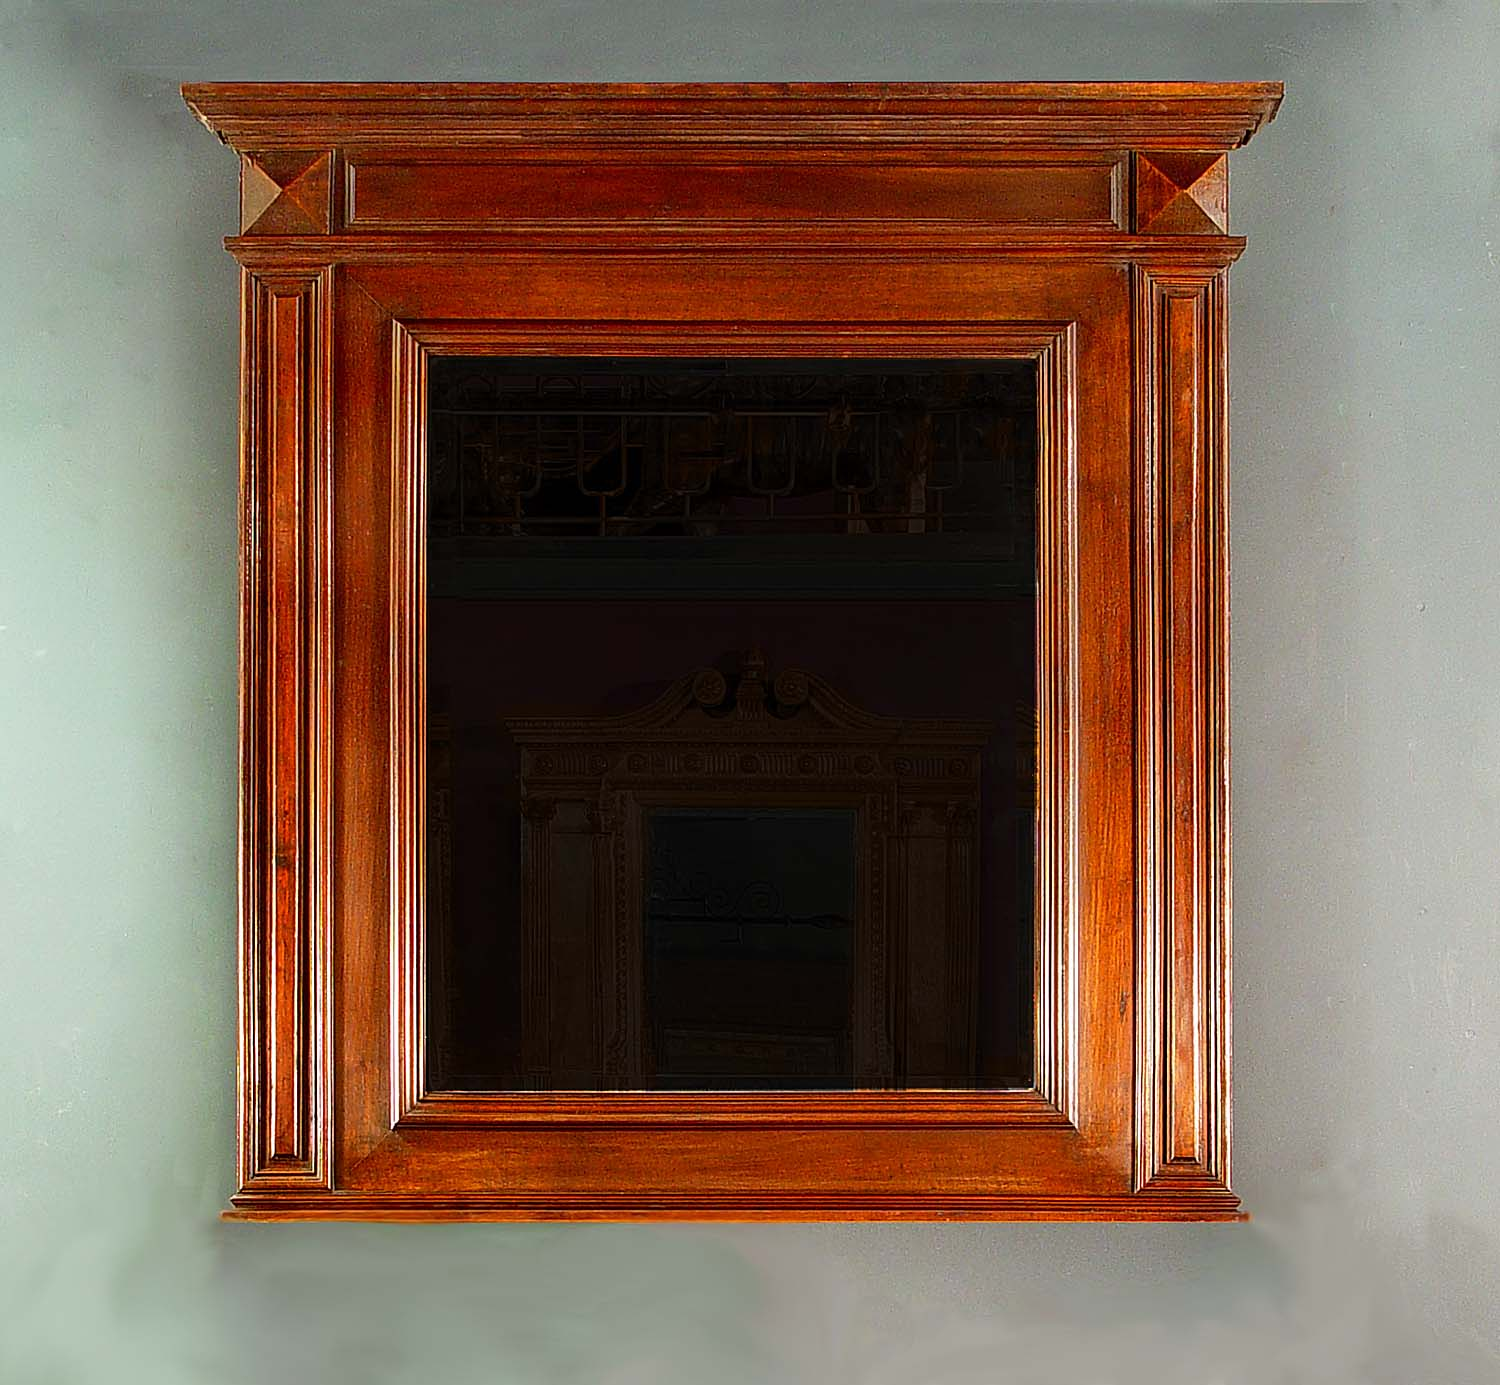 Antique Louis XIV Overmantel Mirror in Walnut with the original glass